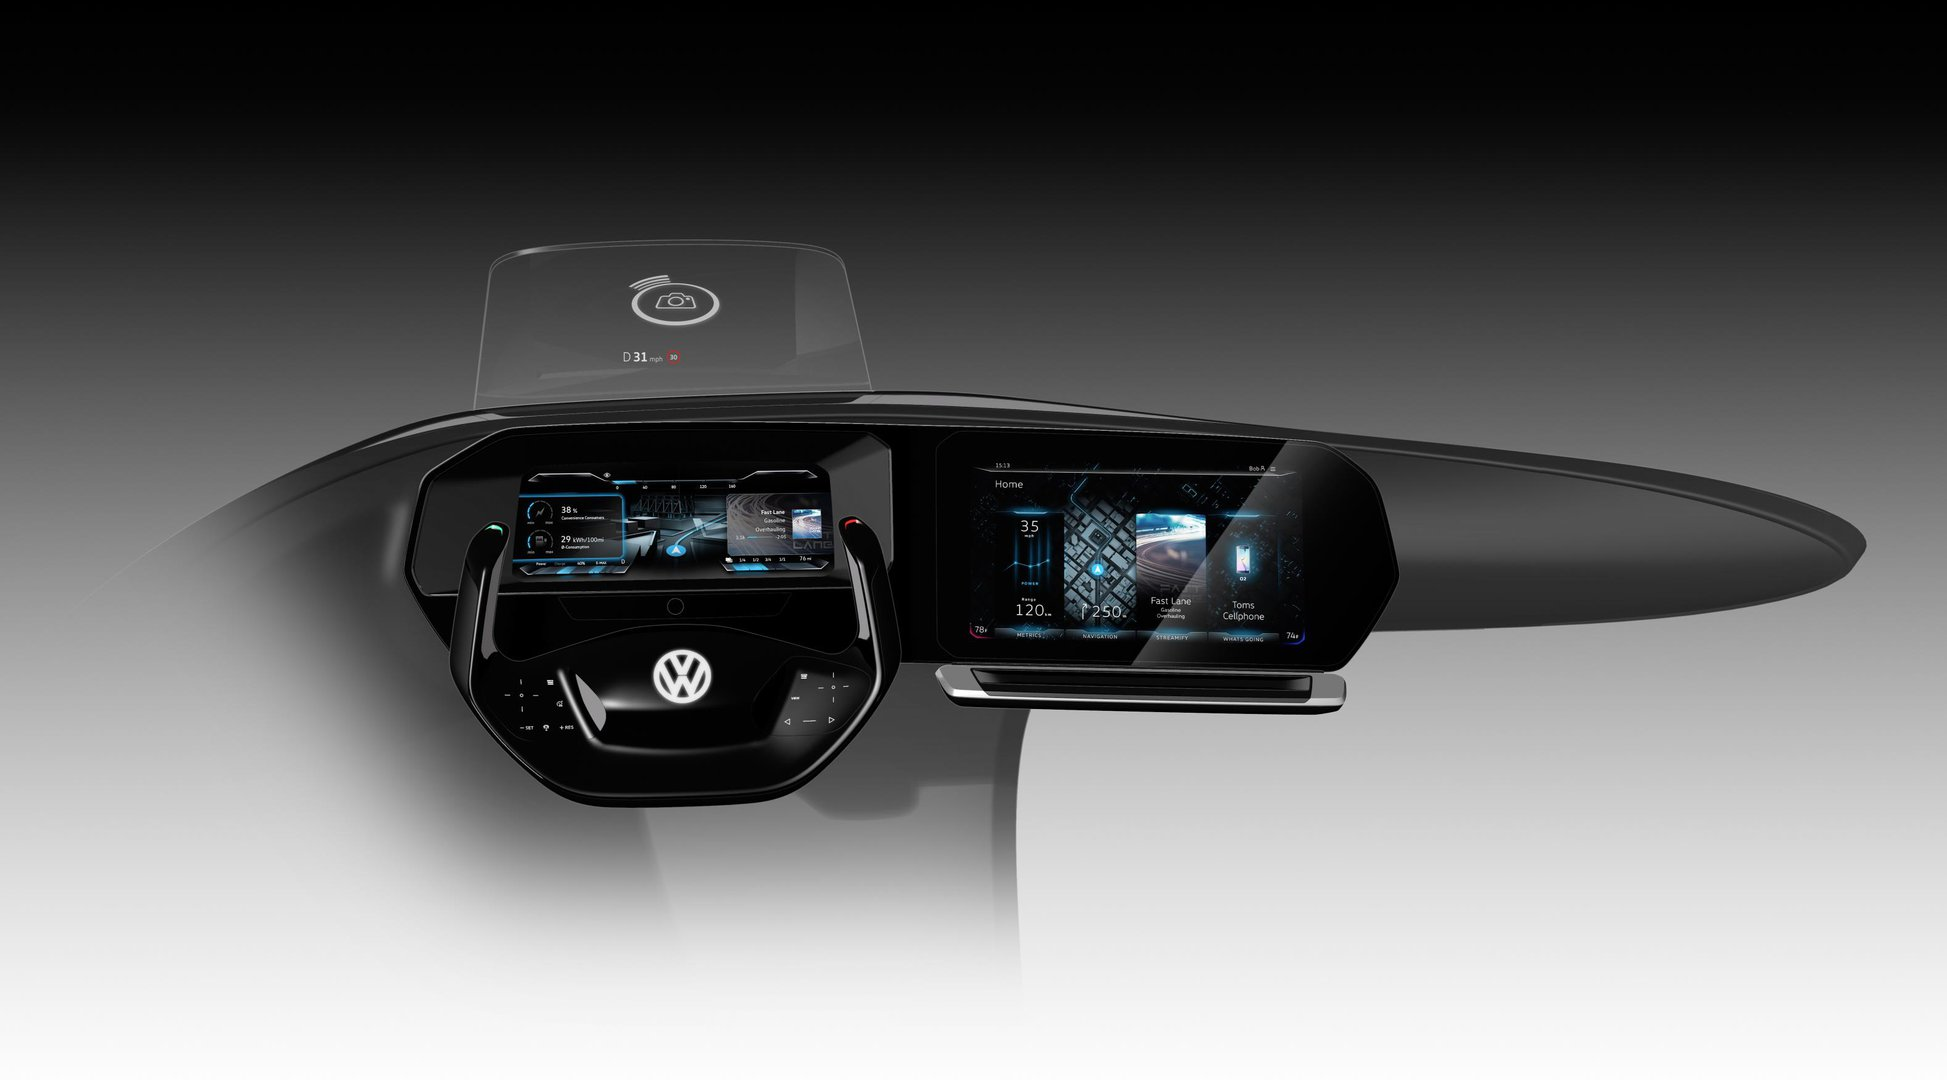 Auto cockpit vw  At this year's CES, Volkswagen is demonstrating its ideas about ...